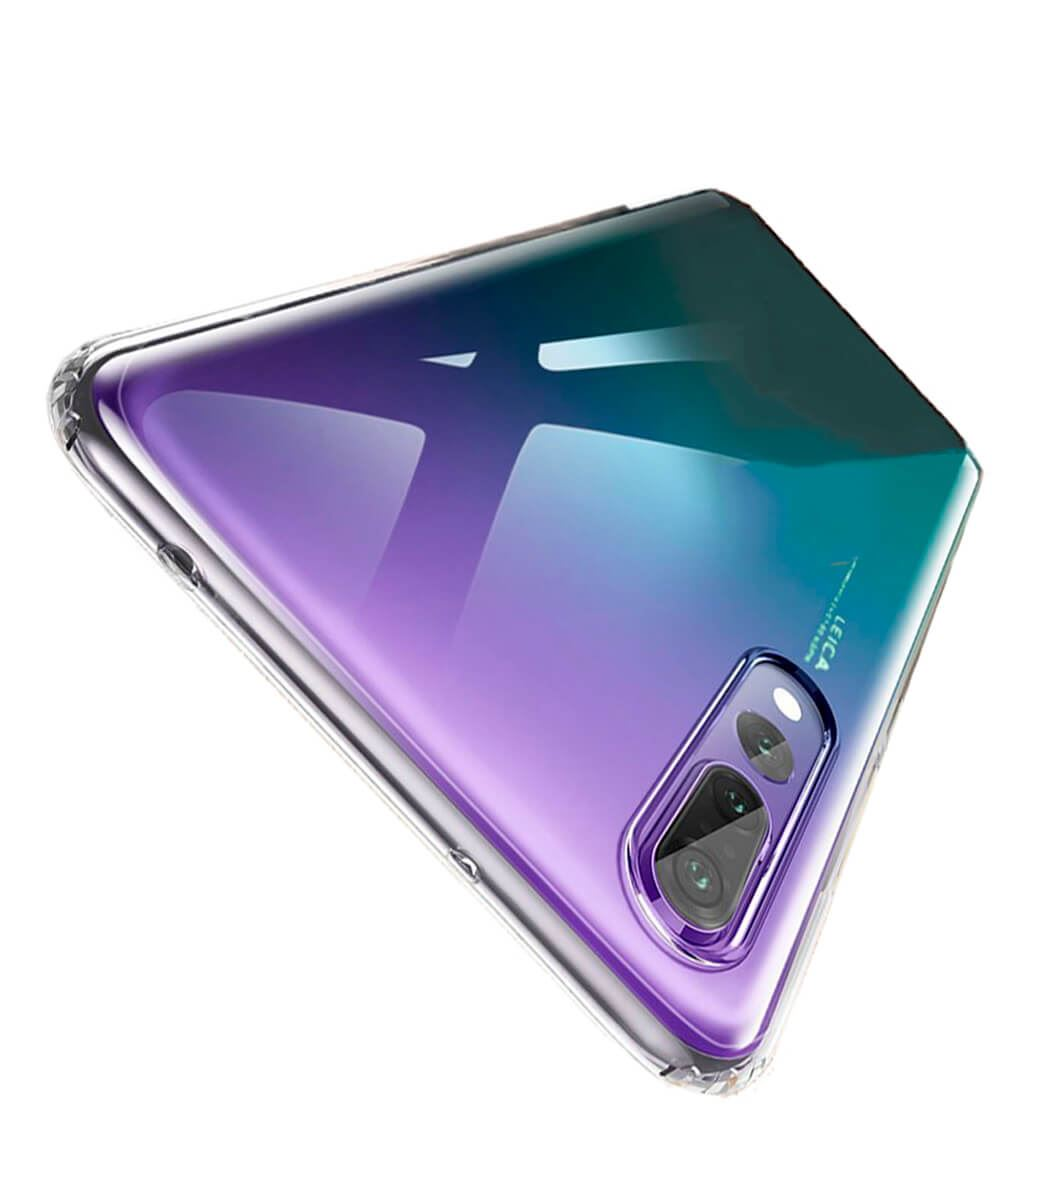 Shockproof-Silicone-Protective-Clear-Gel-Cover-Case-For-Huawei-P20-Pro-P-Smart thumbnail 61